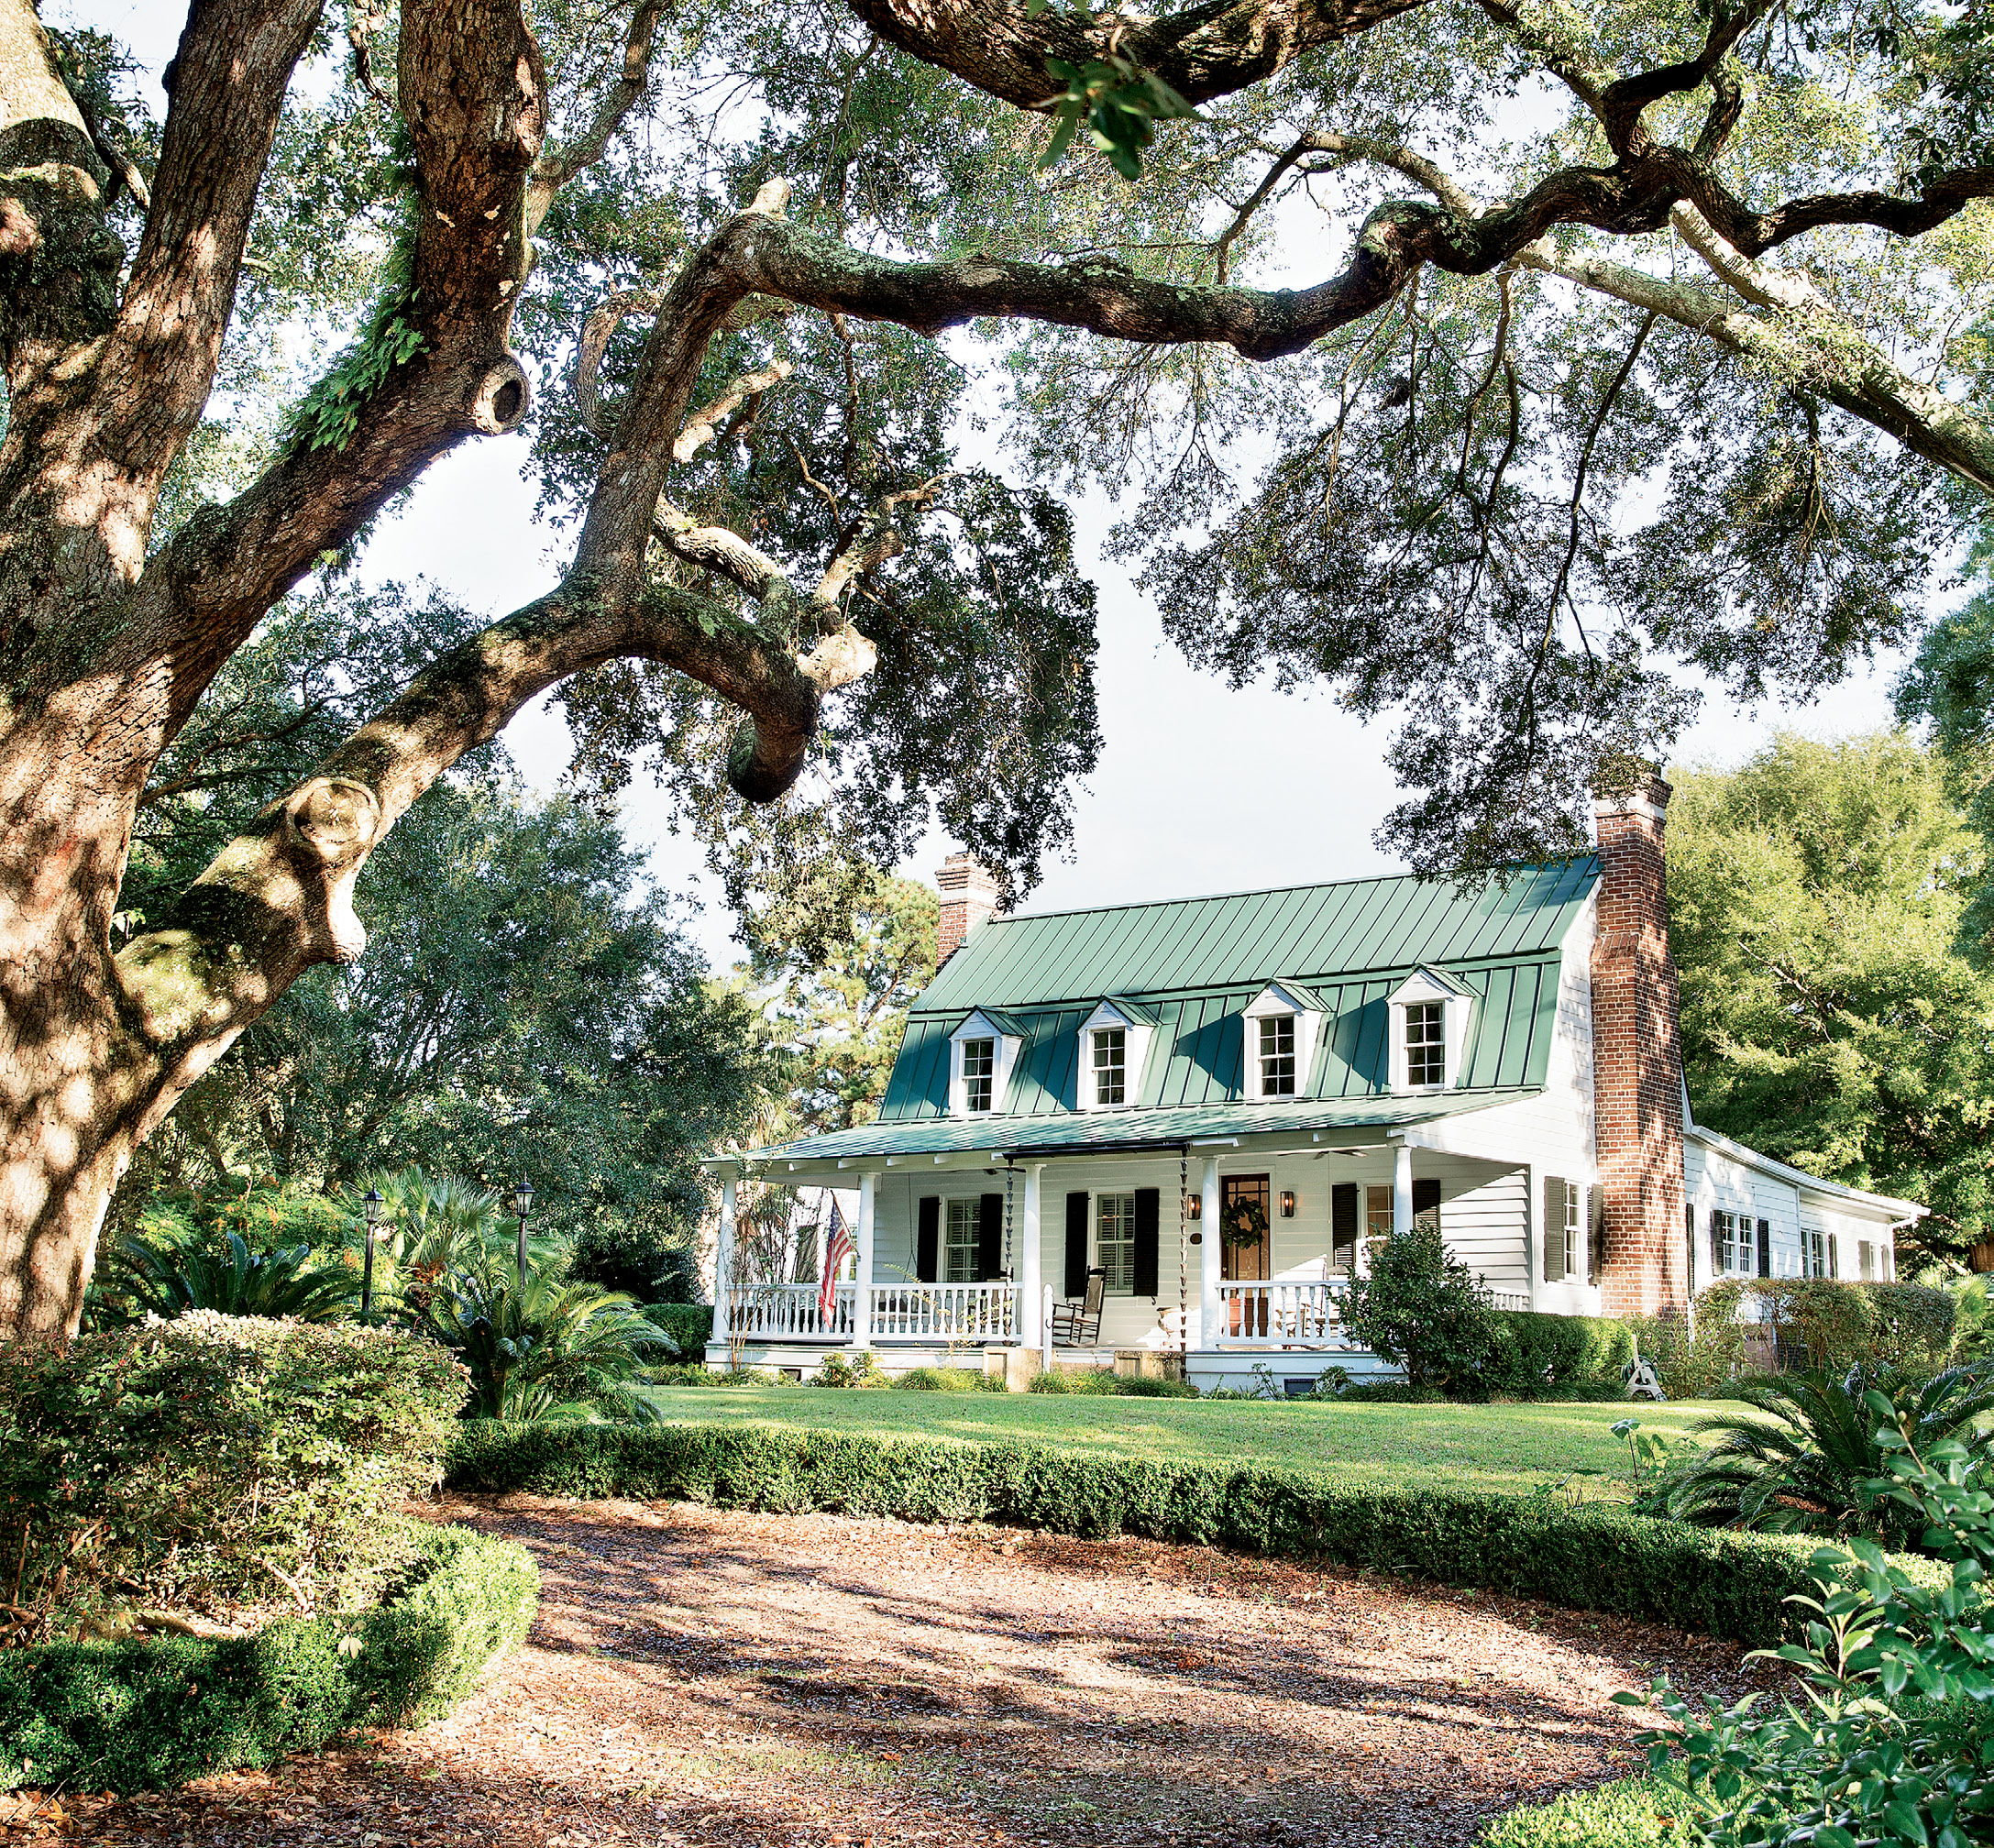 historic pedigree: The Dutch Colonial farmhouse, originally called the Heyward-Cuthbert House, was built in the 1740s by Thomas Heyward Sr. and is one of the oldest homes on James Island.